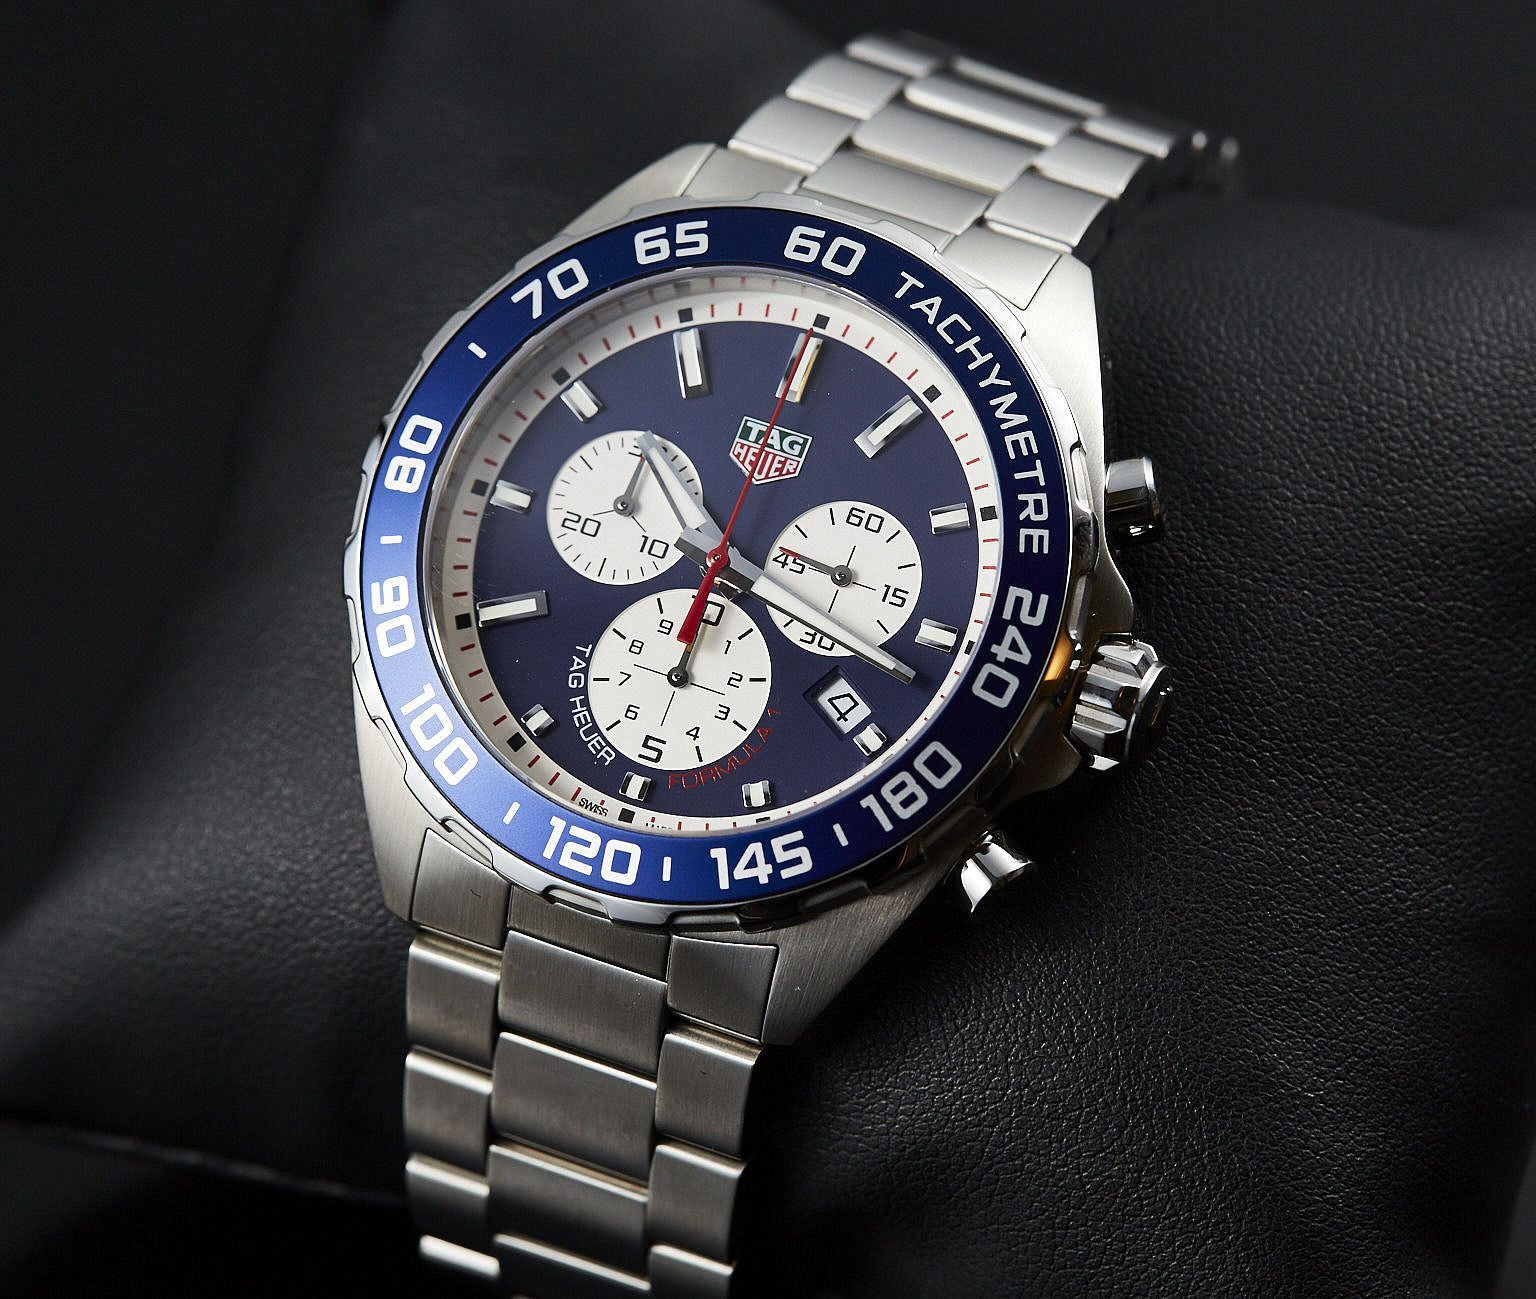 Tag heuer formula 1 red bull edition - bracelet | Watch ...